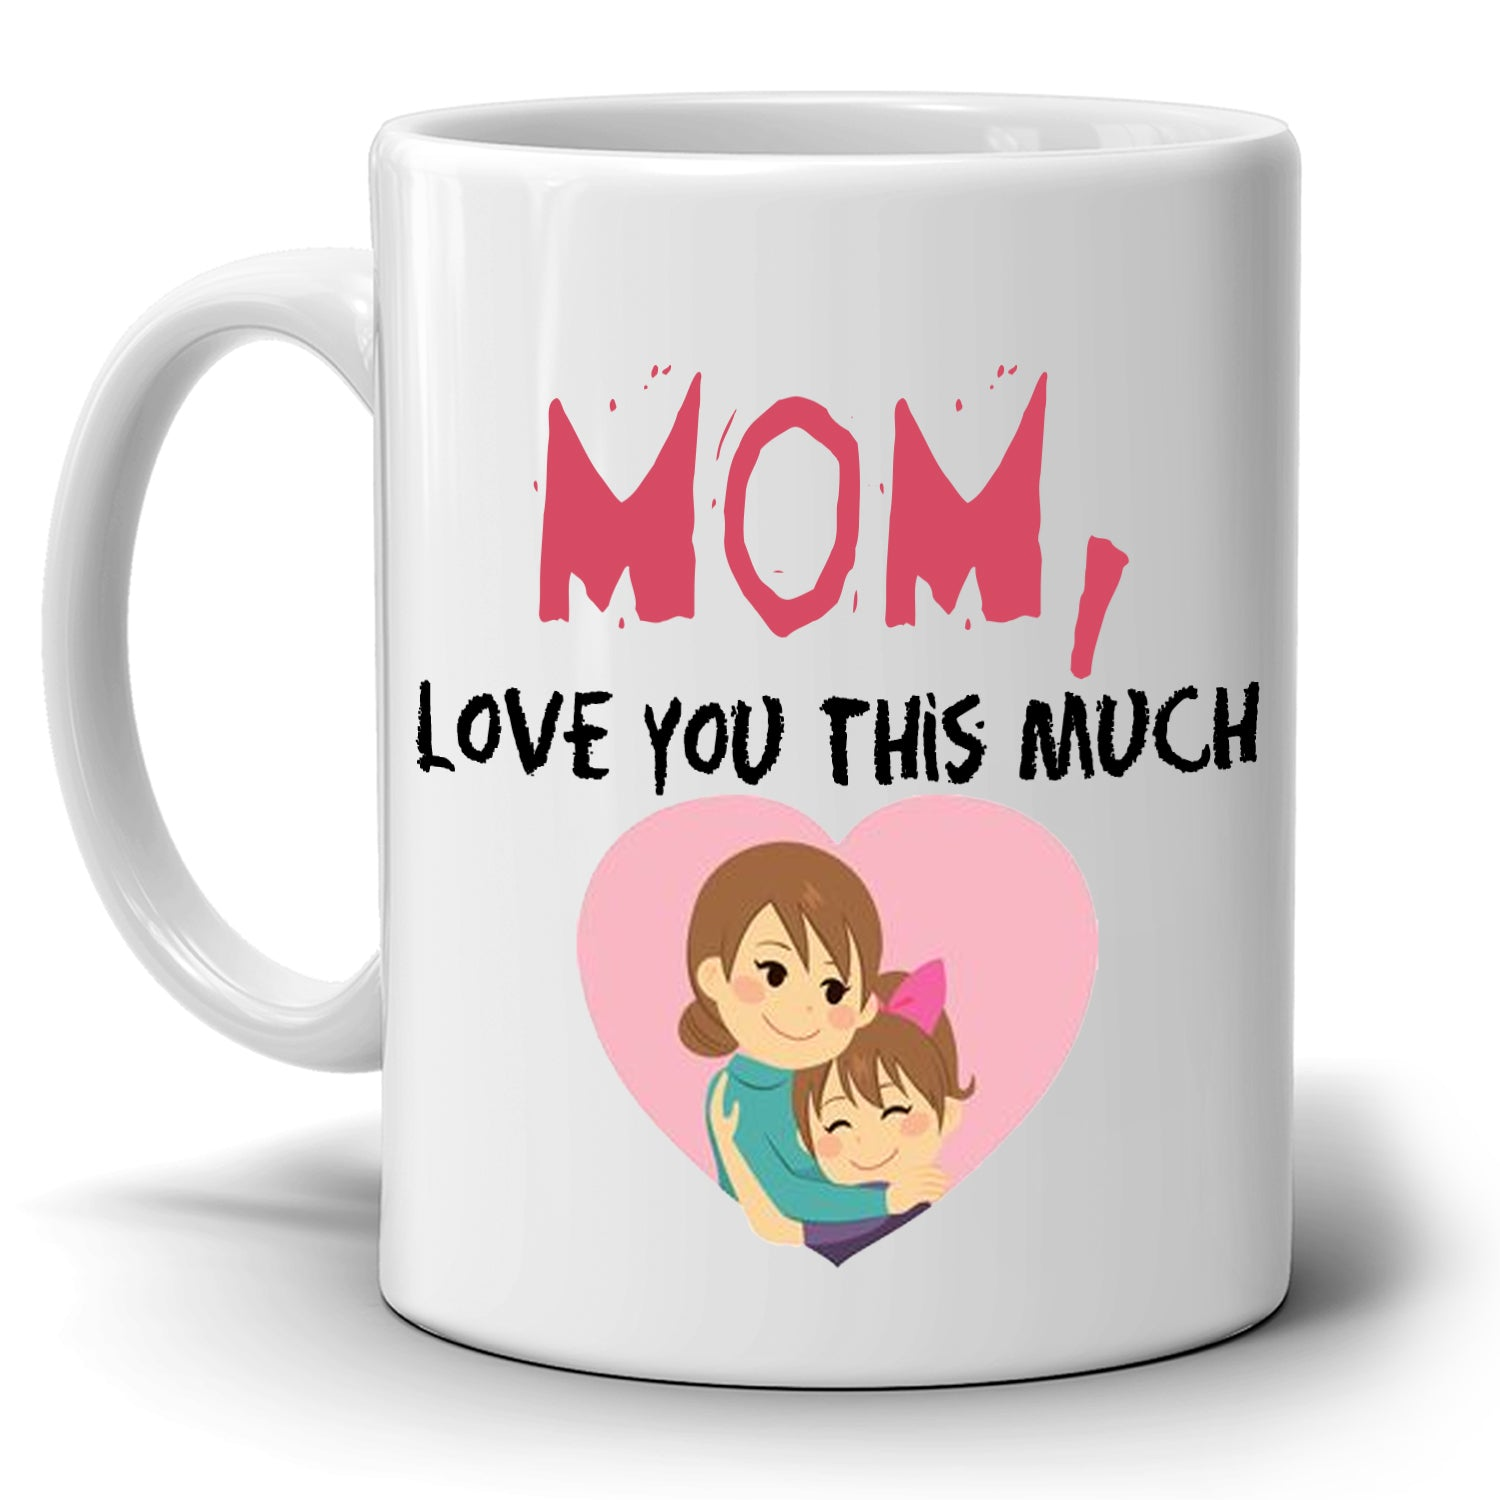 Cute Mothers Day Birthday Gifts Mug From Daughter Mom Love You This